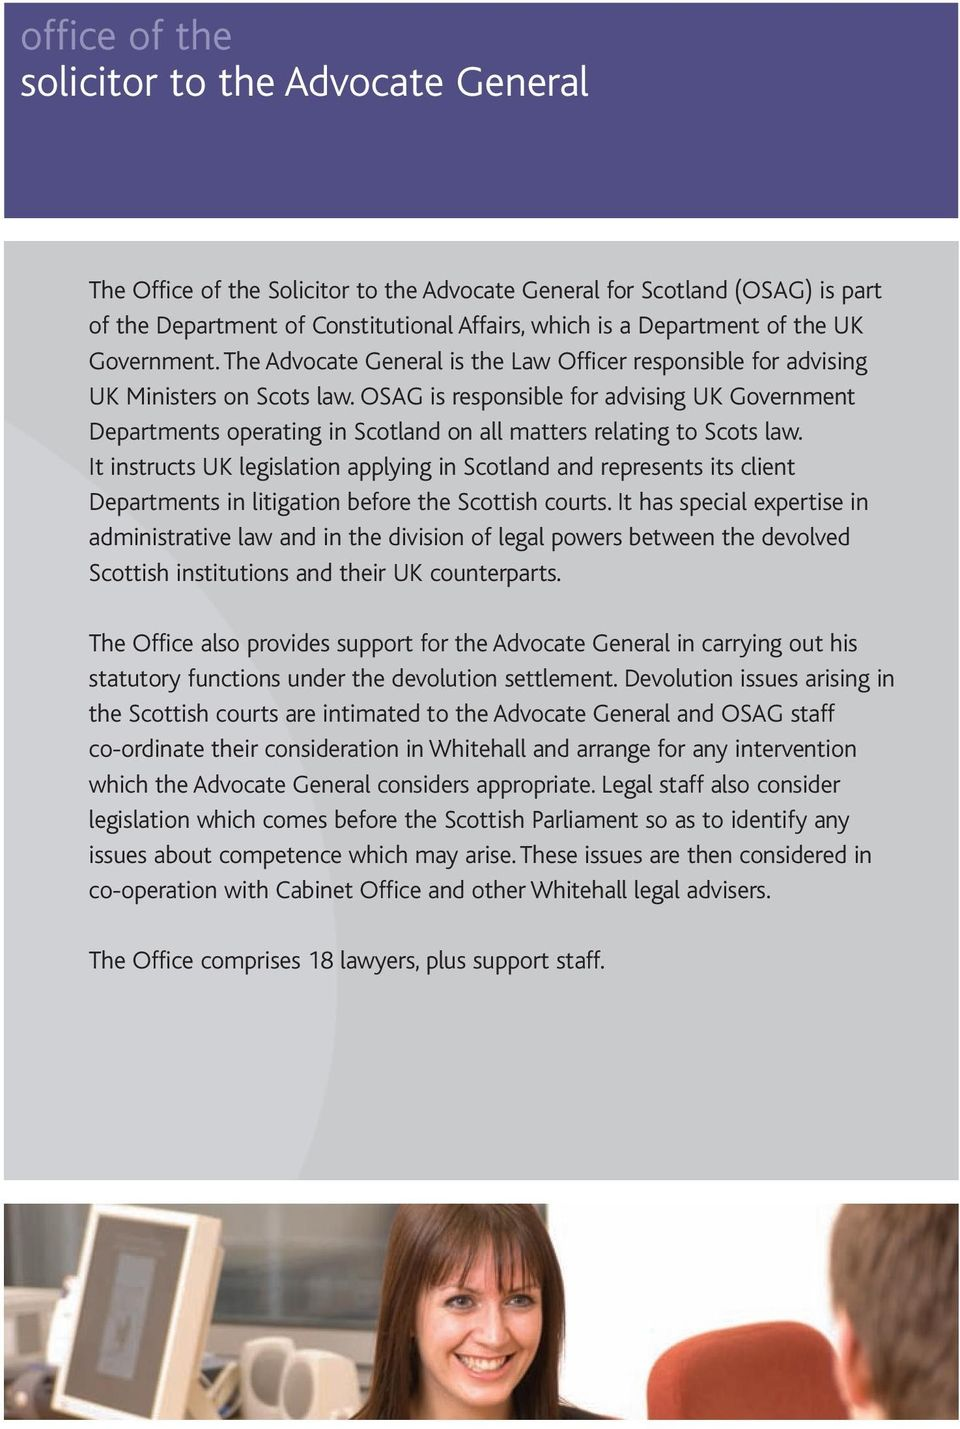 OSAG is responsible for advising UK Government Departments operating in Scotland on all matters relating to Scots law.